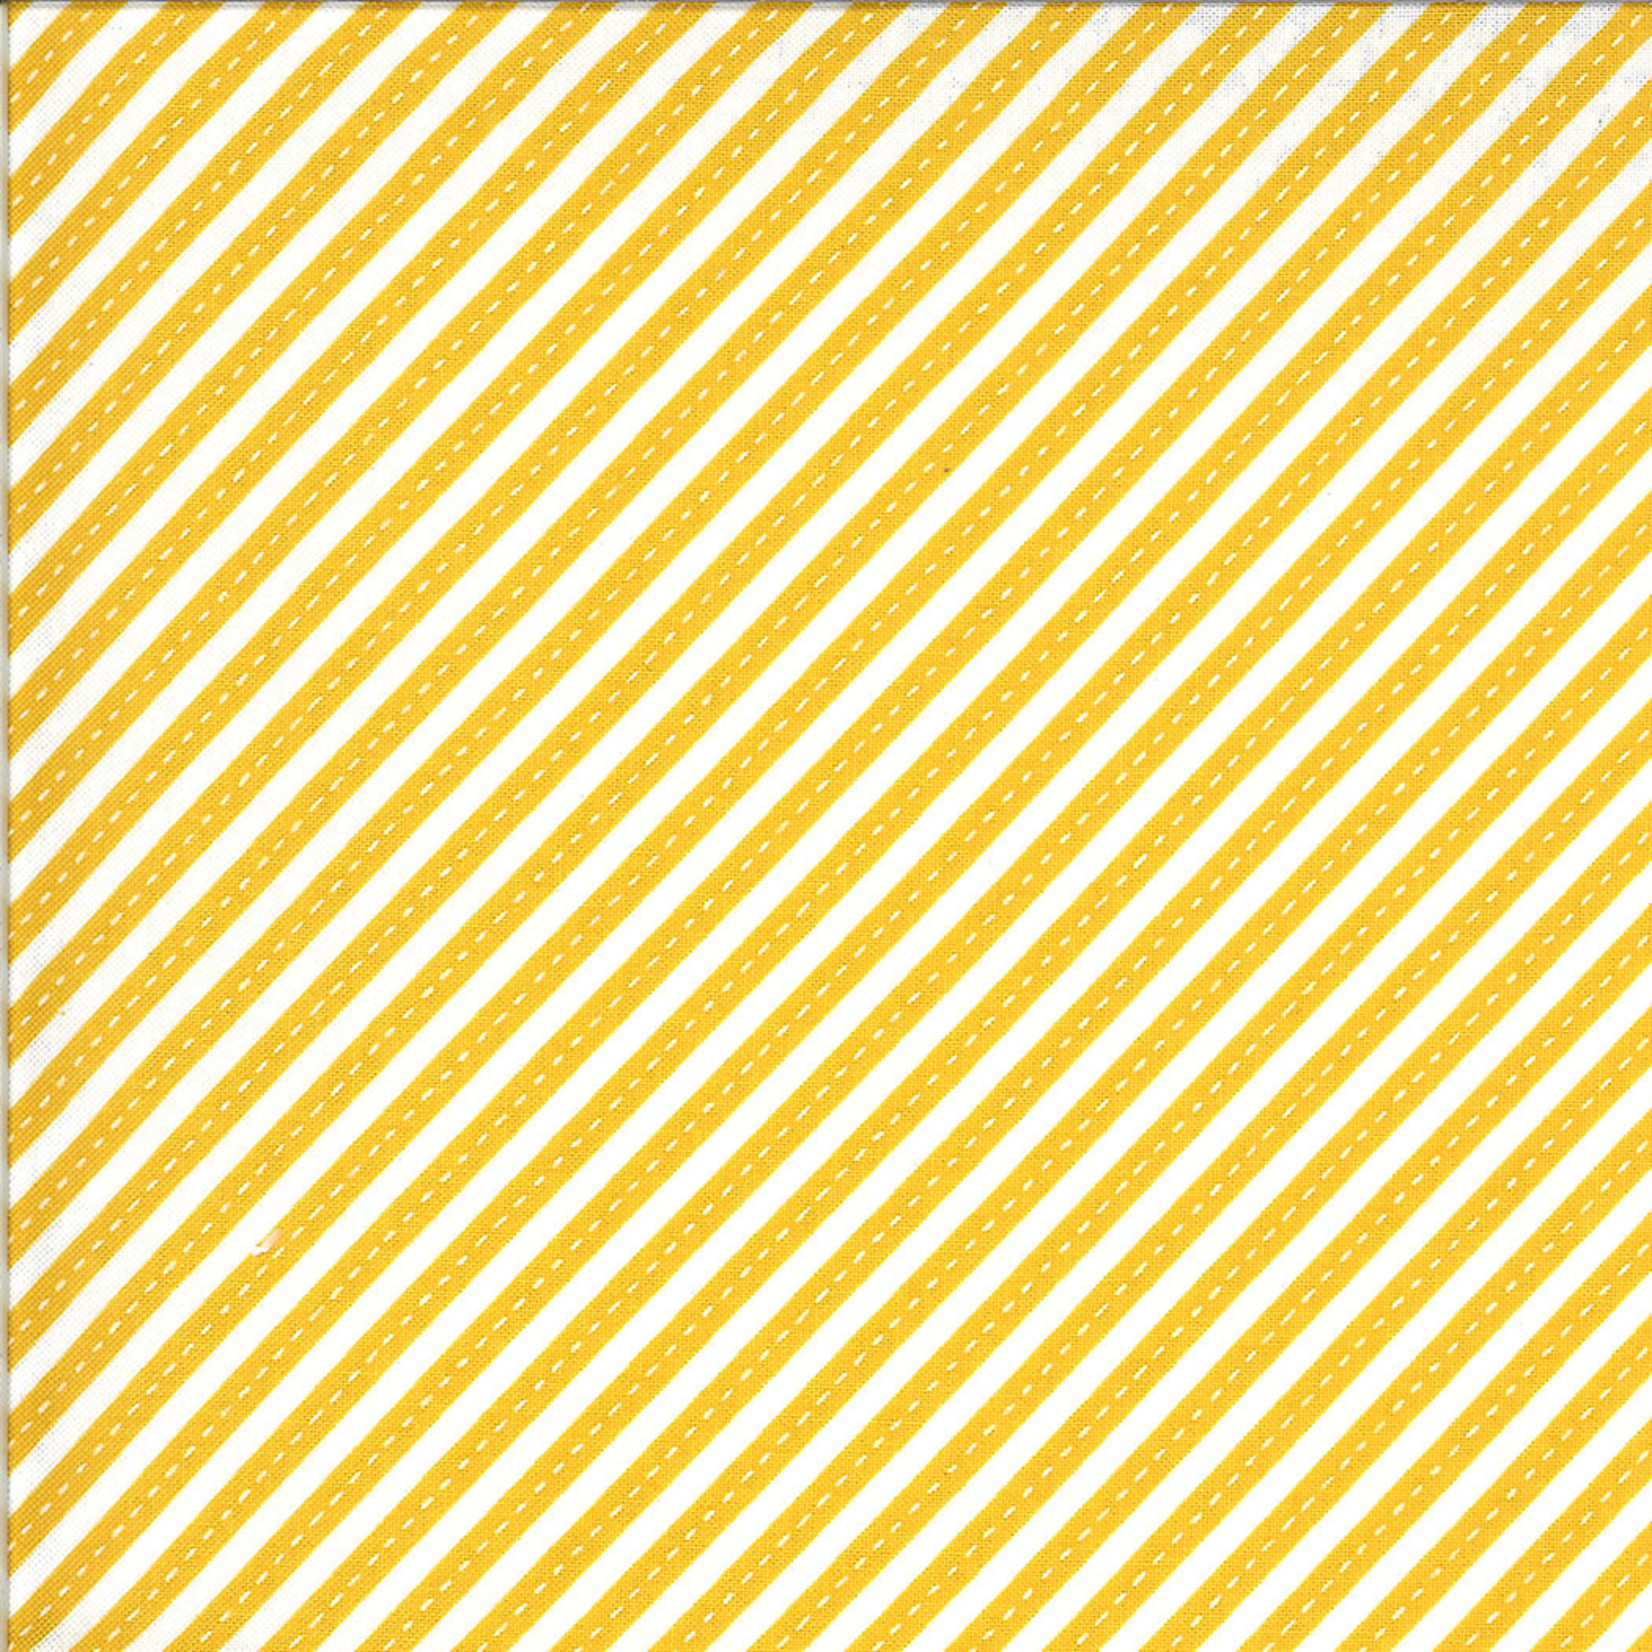 On The Go, Stripes, Backhoe Yellow (20727 17) $0.20 per cm or $20/m